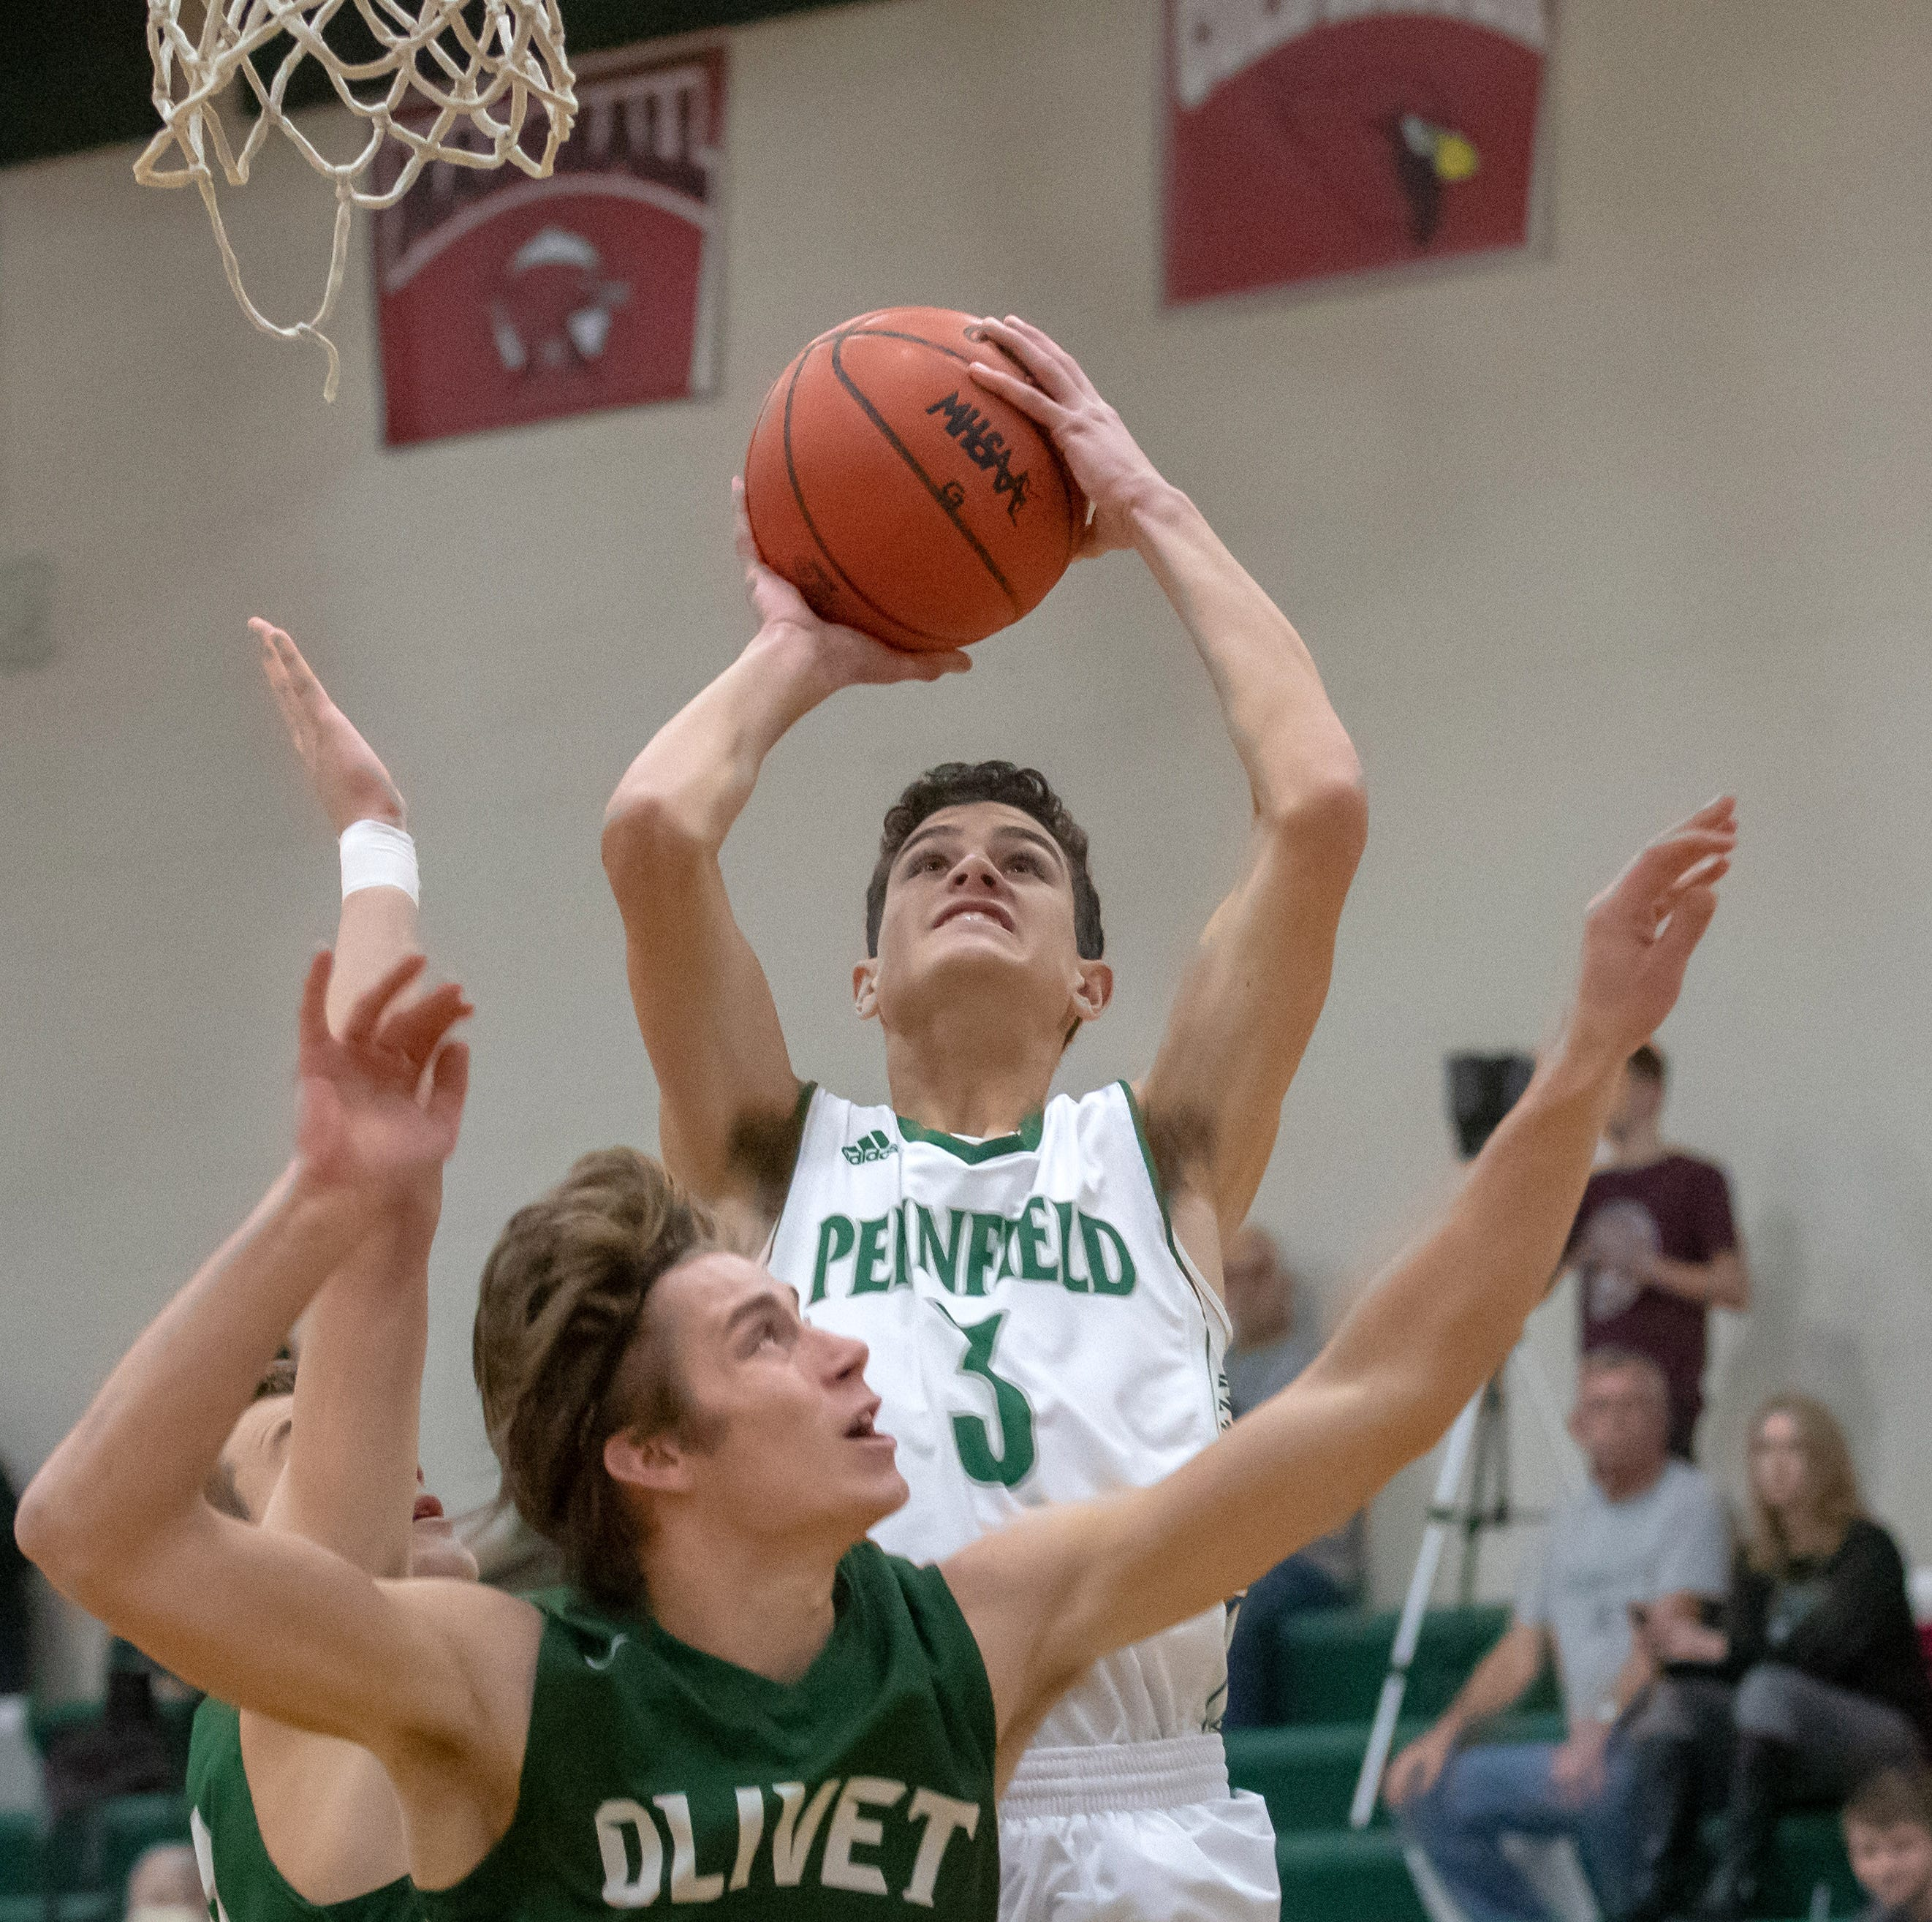 Pennfield's Gavin Liggett is Enquirer Athlete of the Week winner